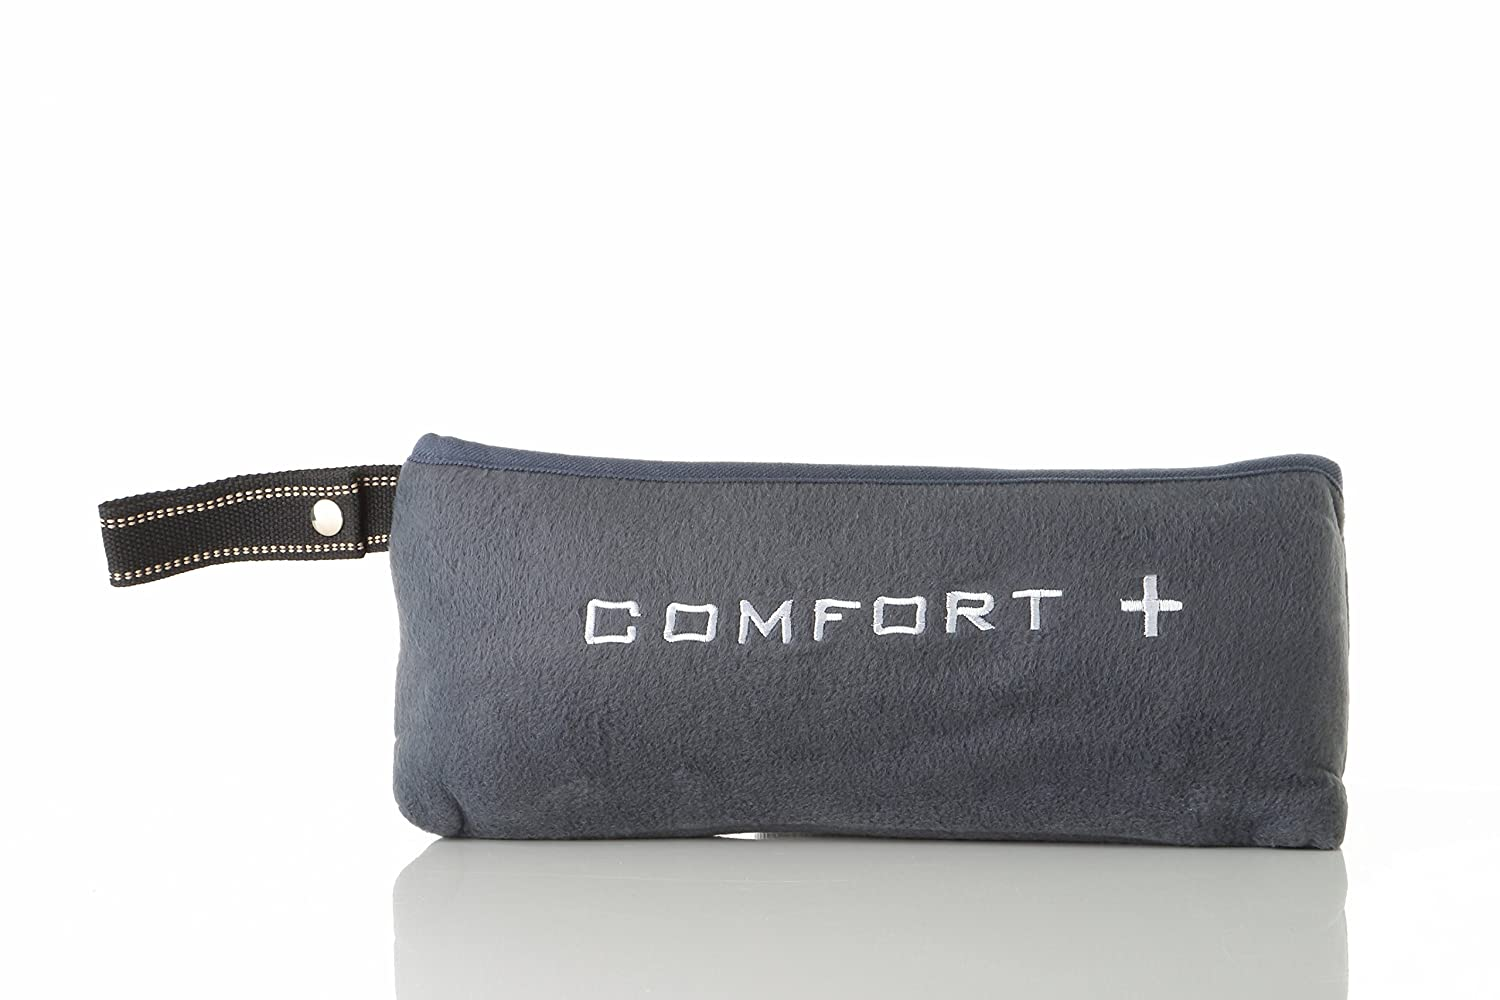 The ComfortPlus 3-in-1 Premium Travel Blanket travel product recommended by Sam Maizlech on Lifney.